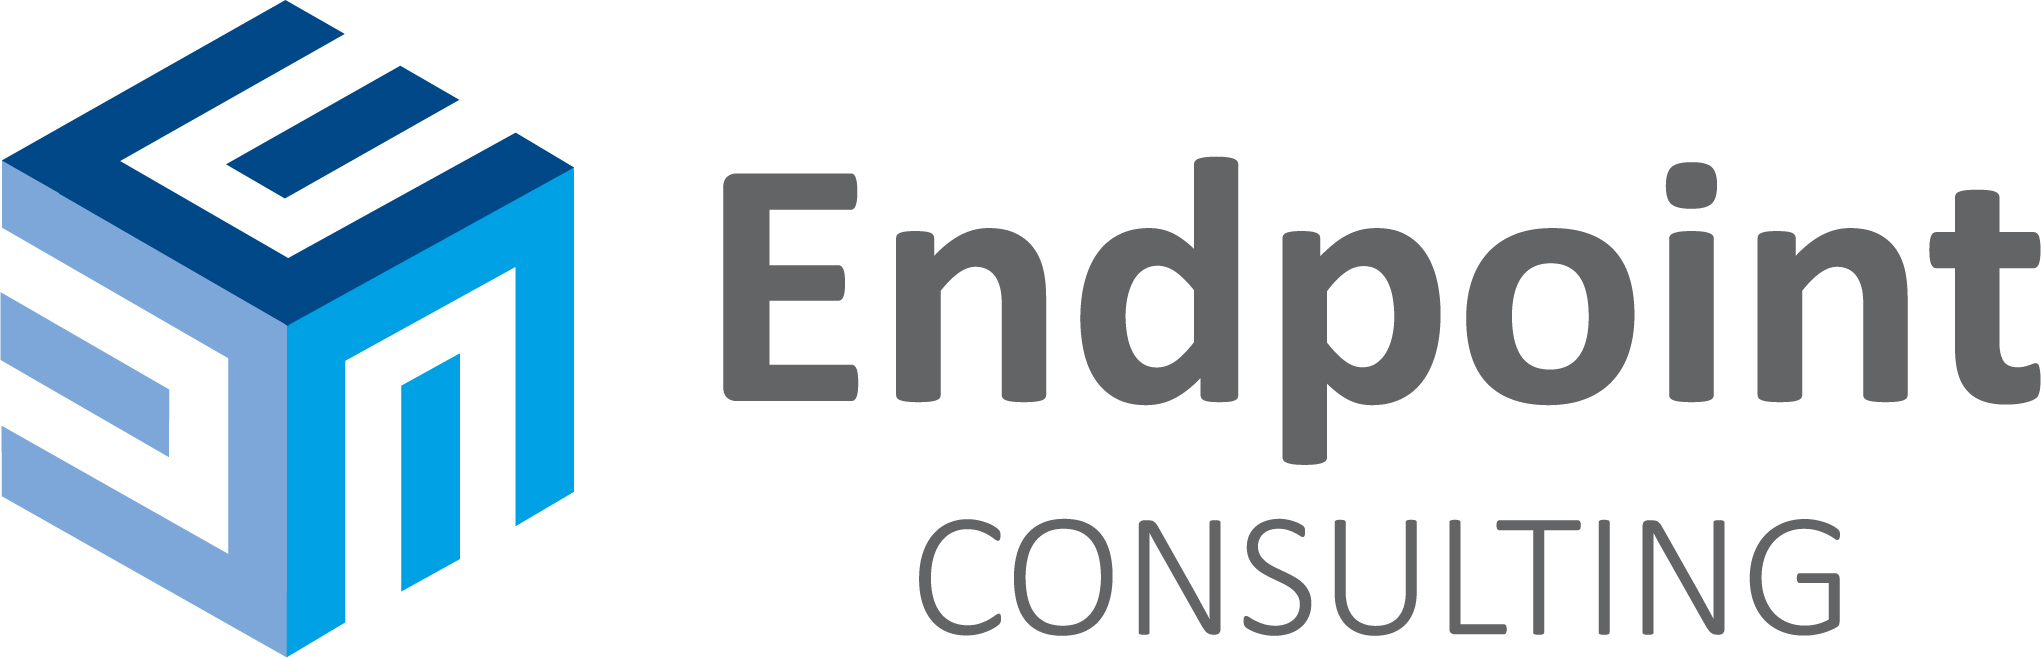 Endpoint Consulting